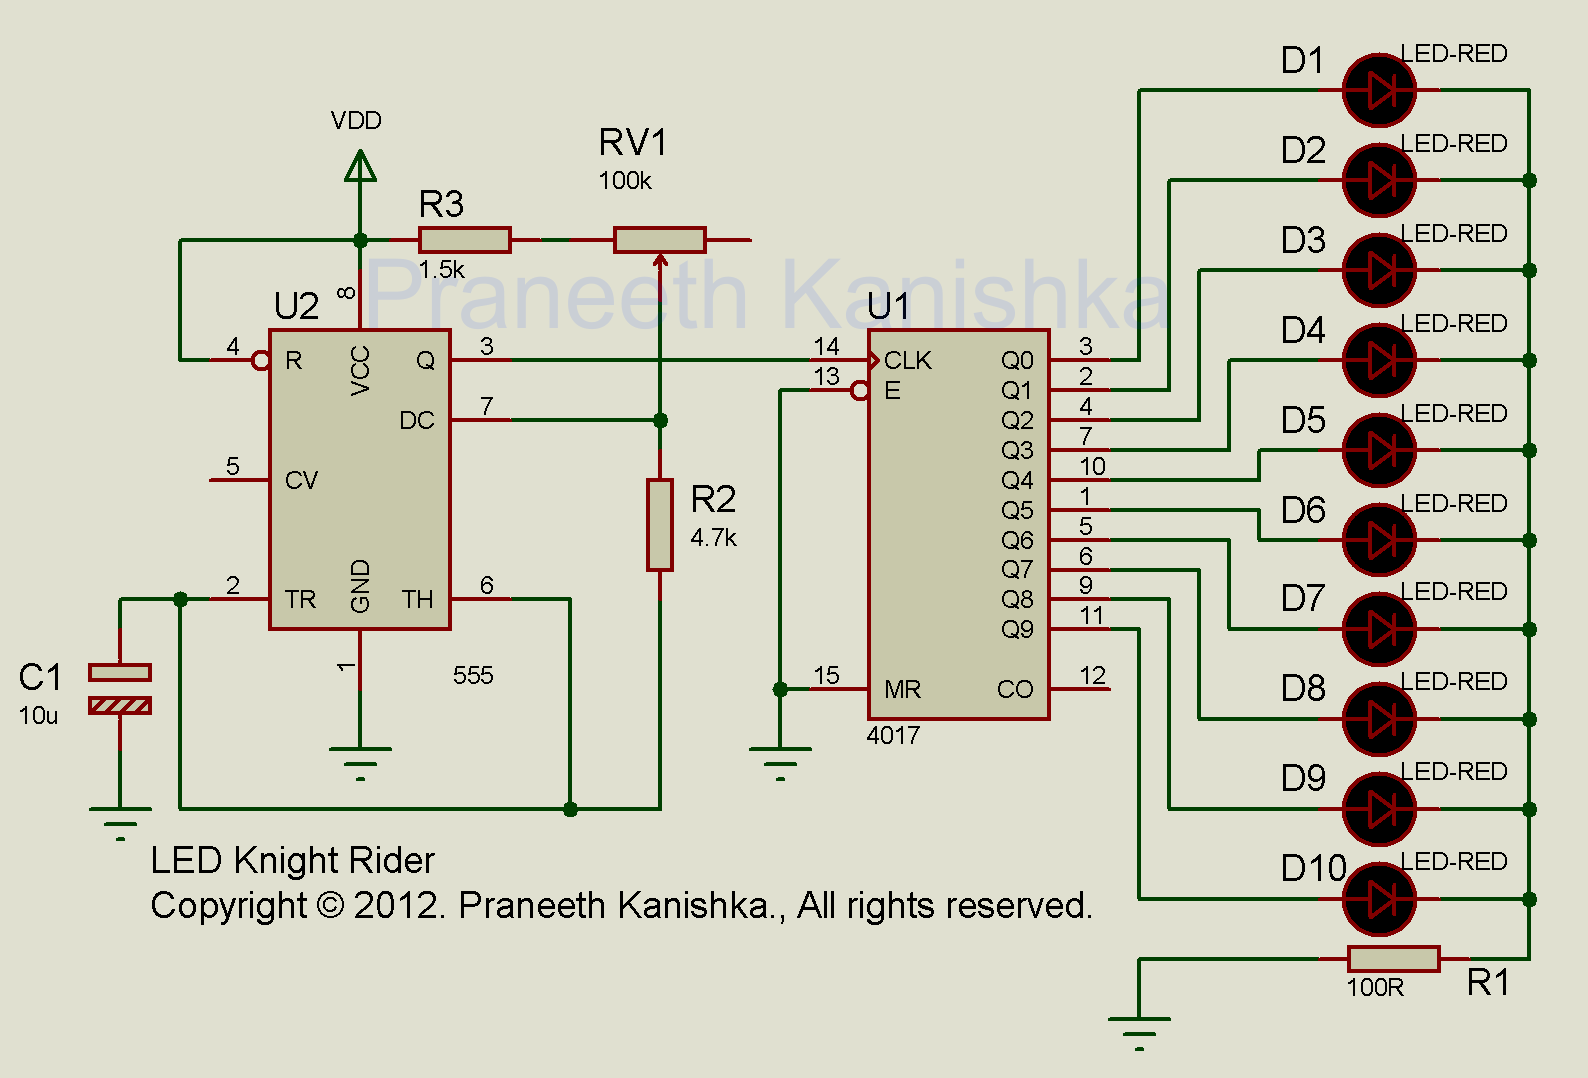 Knight Rider Circuit Diagram Led Schematics Great Installation Of Chaser Using Ic 555 And Cd 4017 Circuits Cd4017 Ne555 Scorpionz Electronic Rh Scopionz Blogspot Com Christmas Light Projects